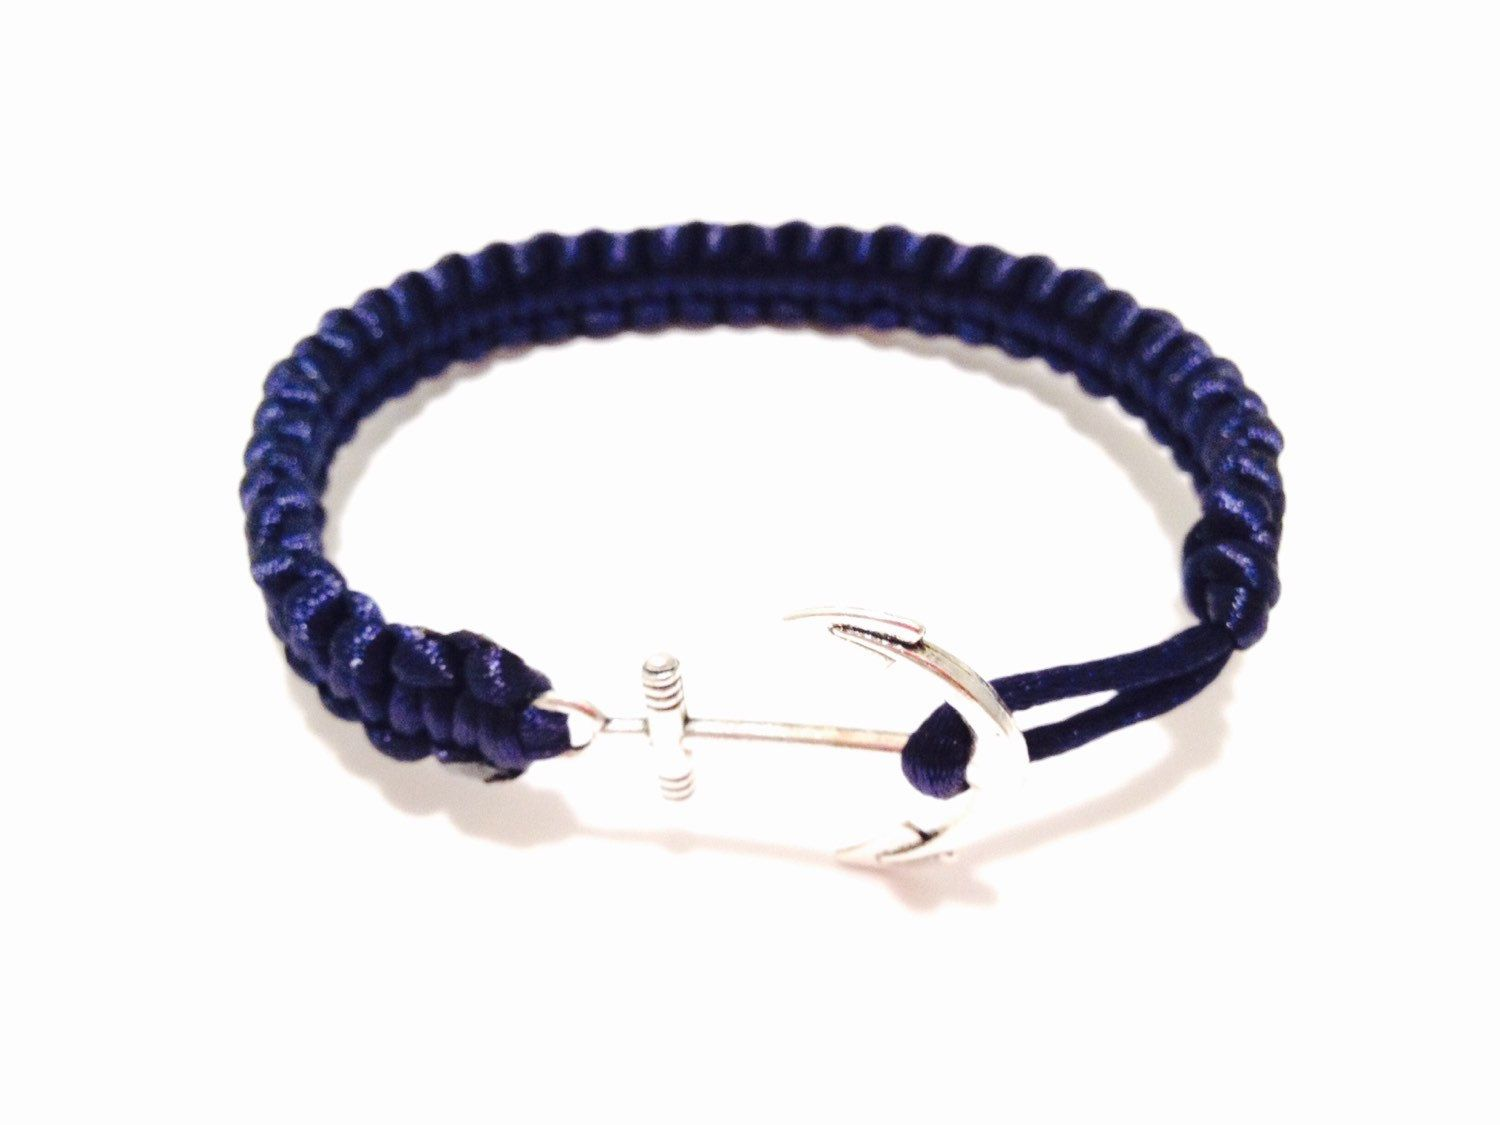 products anchor navy yachtmaster etiquette thread luxury bracelet